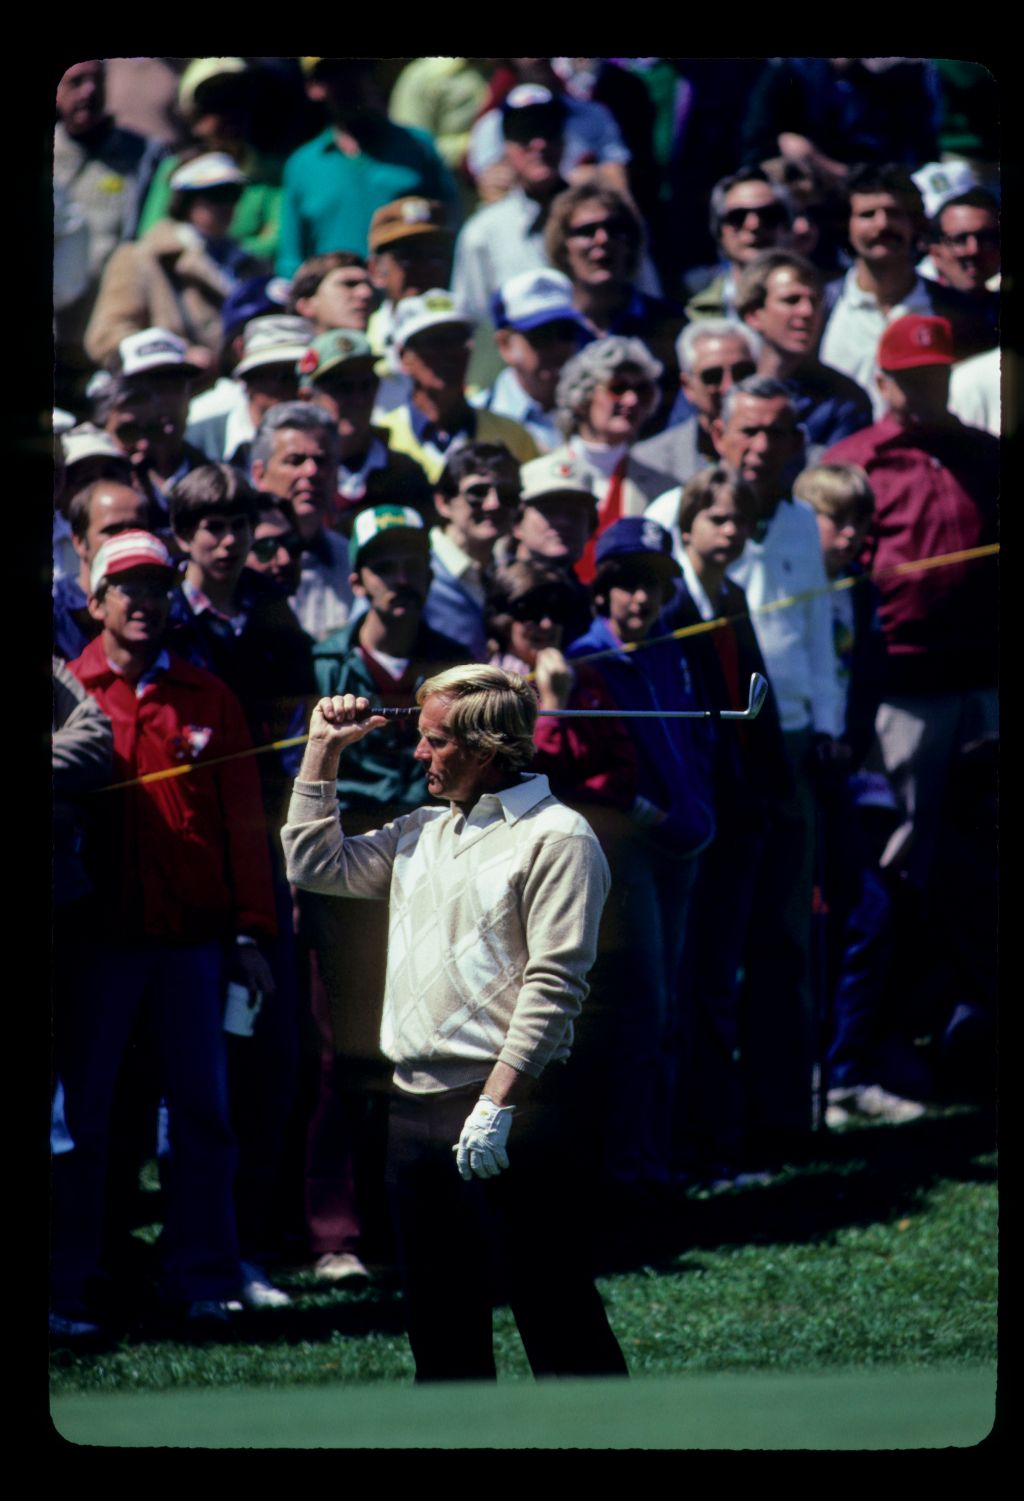 Jack Nicklaus raising his wedge in frustration after his chip during the 1983 Doral Eastern Open